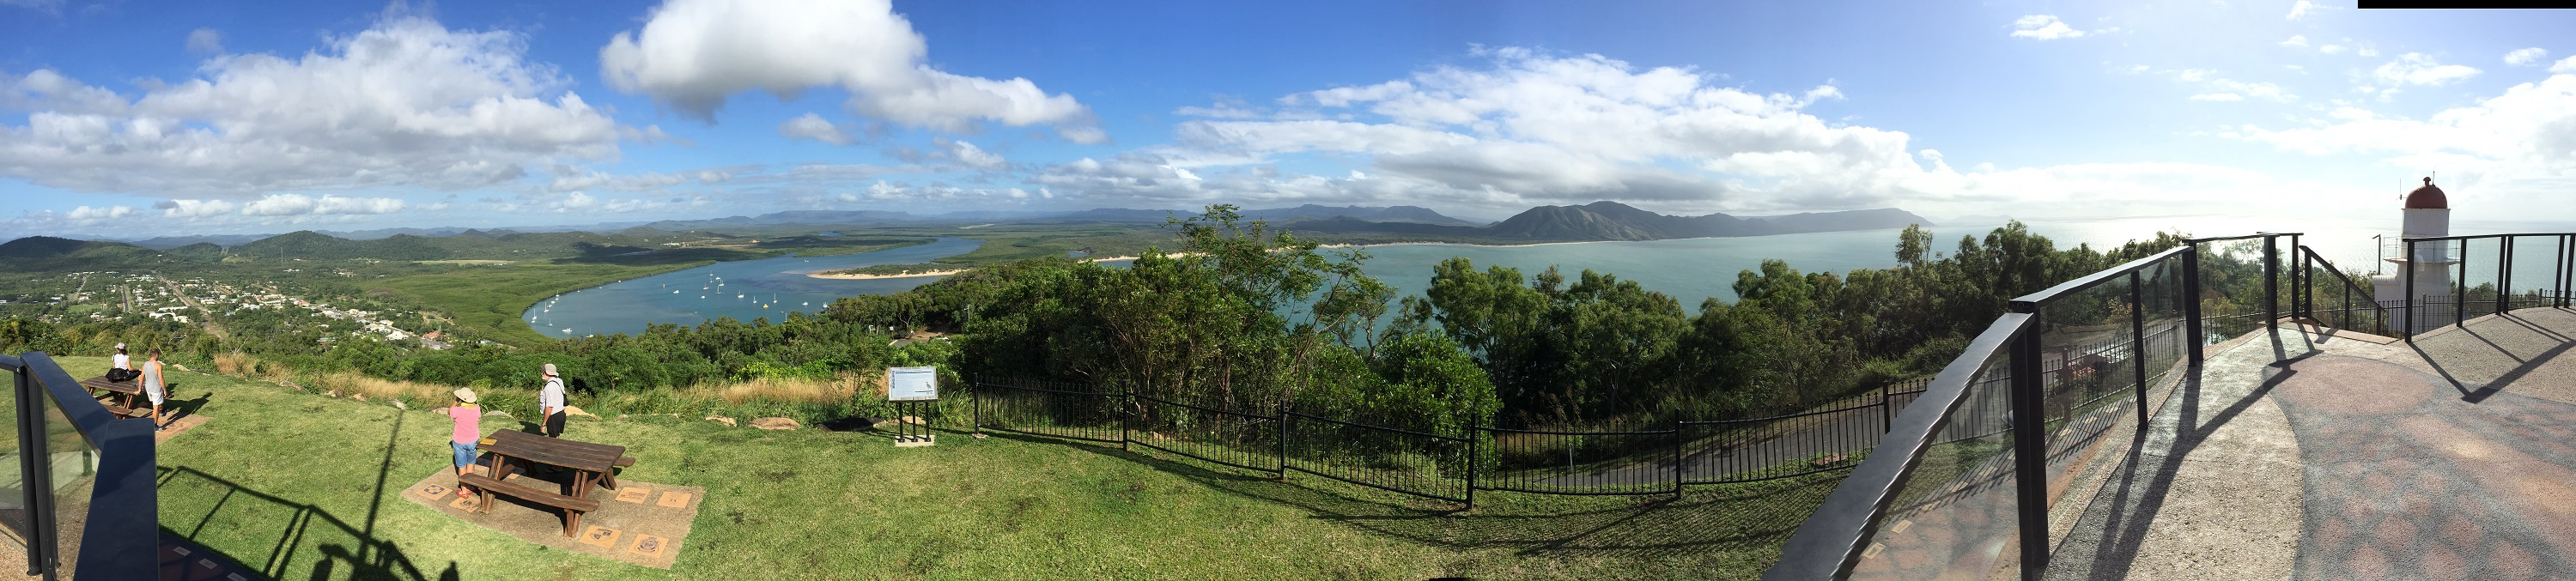 Panorama of Cooktown from Cooks Lookout. Cooktown is to the left, Mt Cook in the distance. Click on this photo to see it full size - it's worth it.